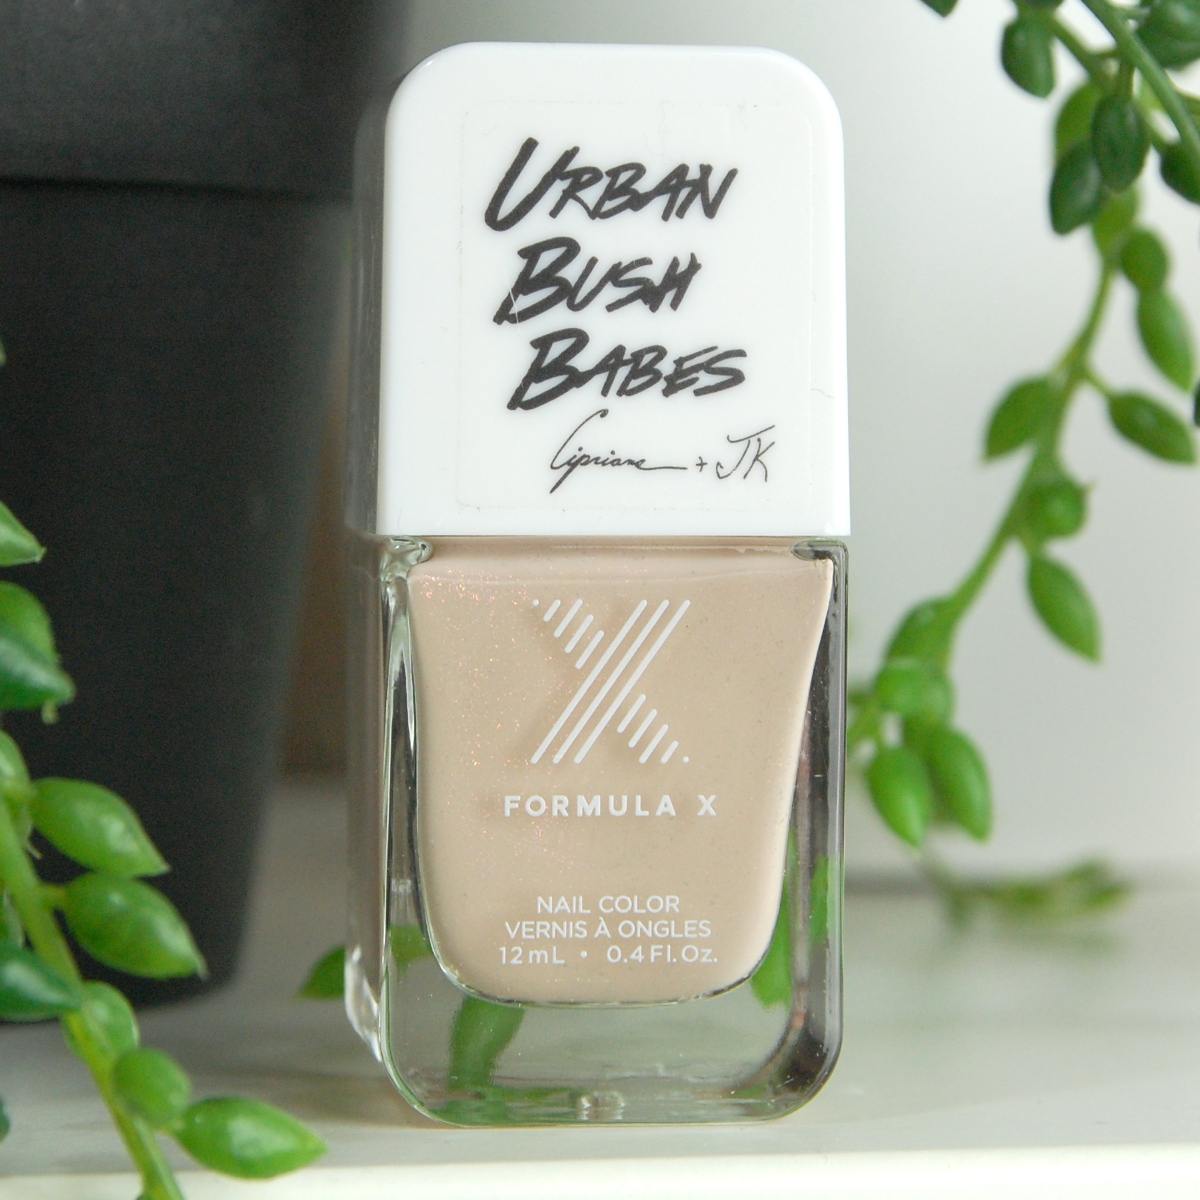 Sephora Formula X #ColorCurators Nail Polish Urban Bush Babes Edition July 2016 review Beige from our Book